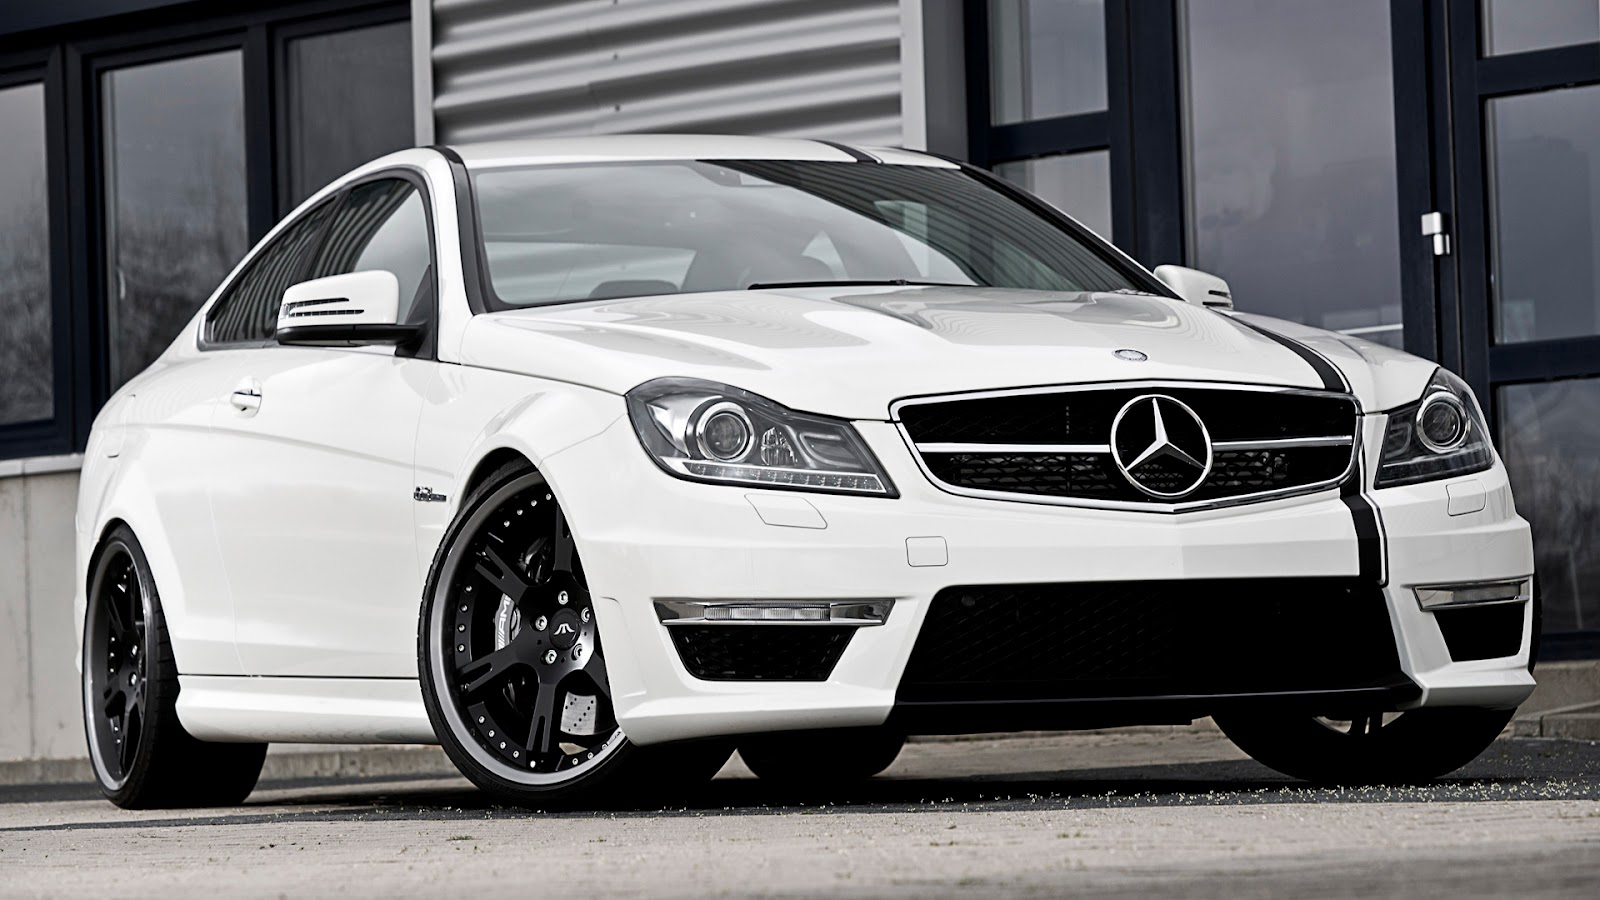 Car wallpapers in good images 2012 wheelsandmore mercedes benz c63 amg coupe v8 570 hp 199 mph - 2012 mercedes c63 amg coupe ...